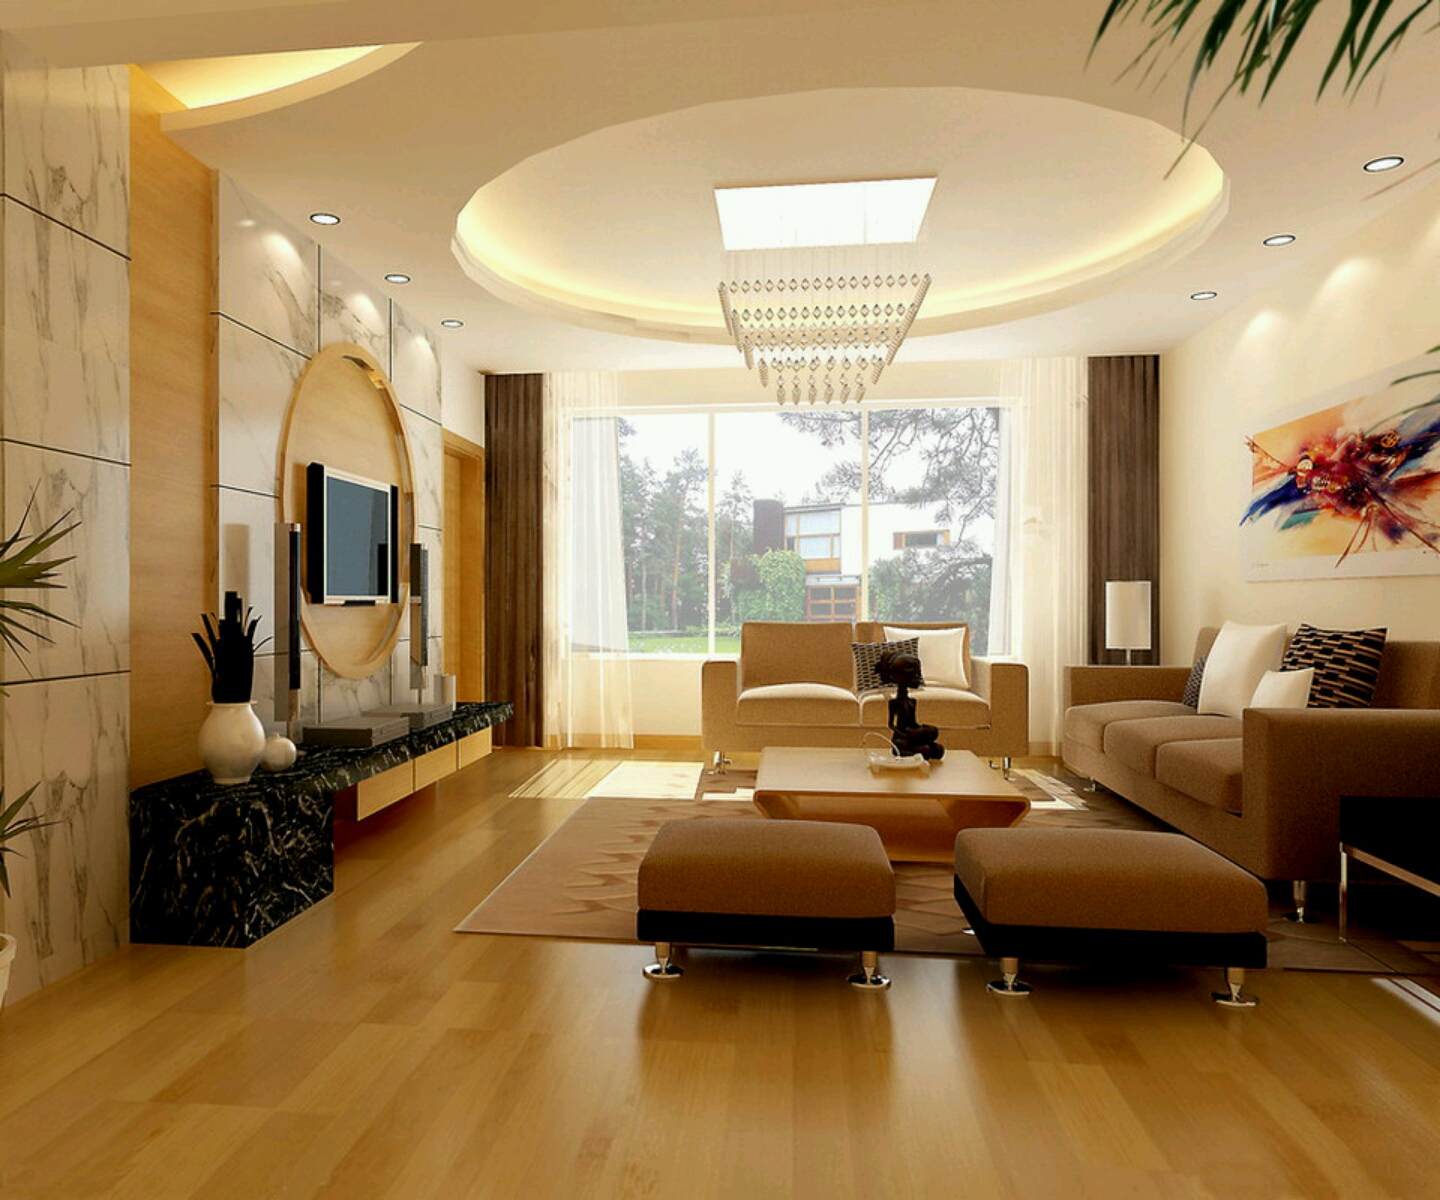 Modern interior decoration living rooms ceiling designs for Home interior drawing room